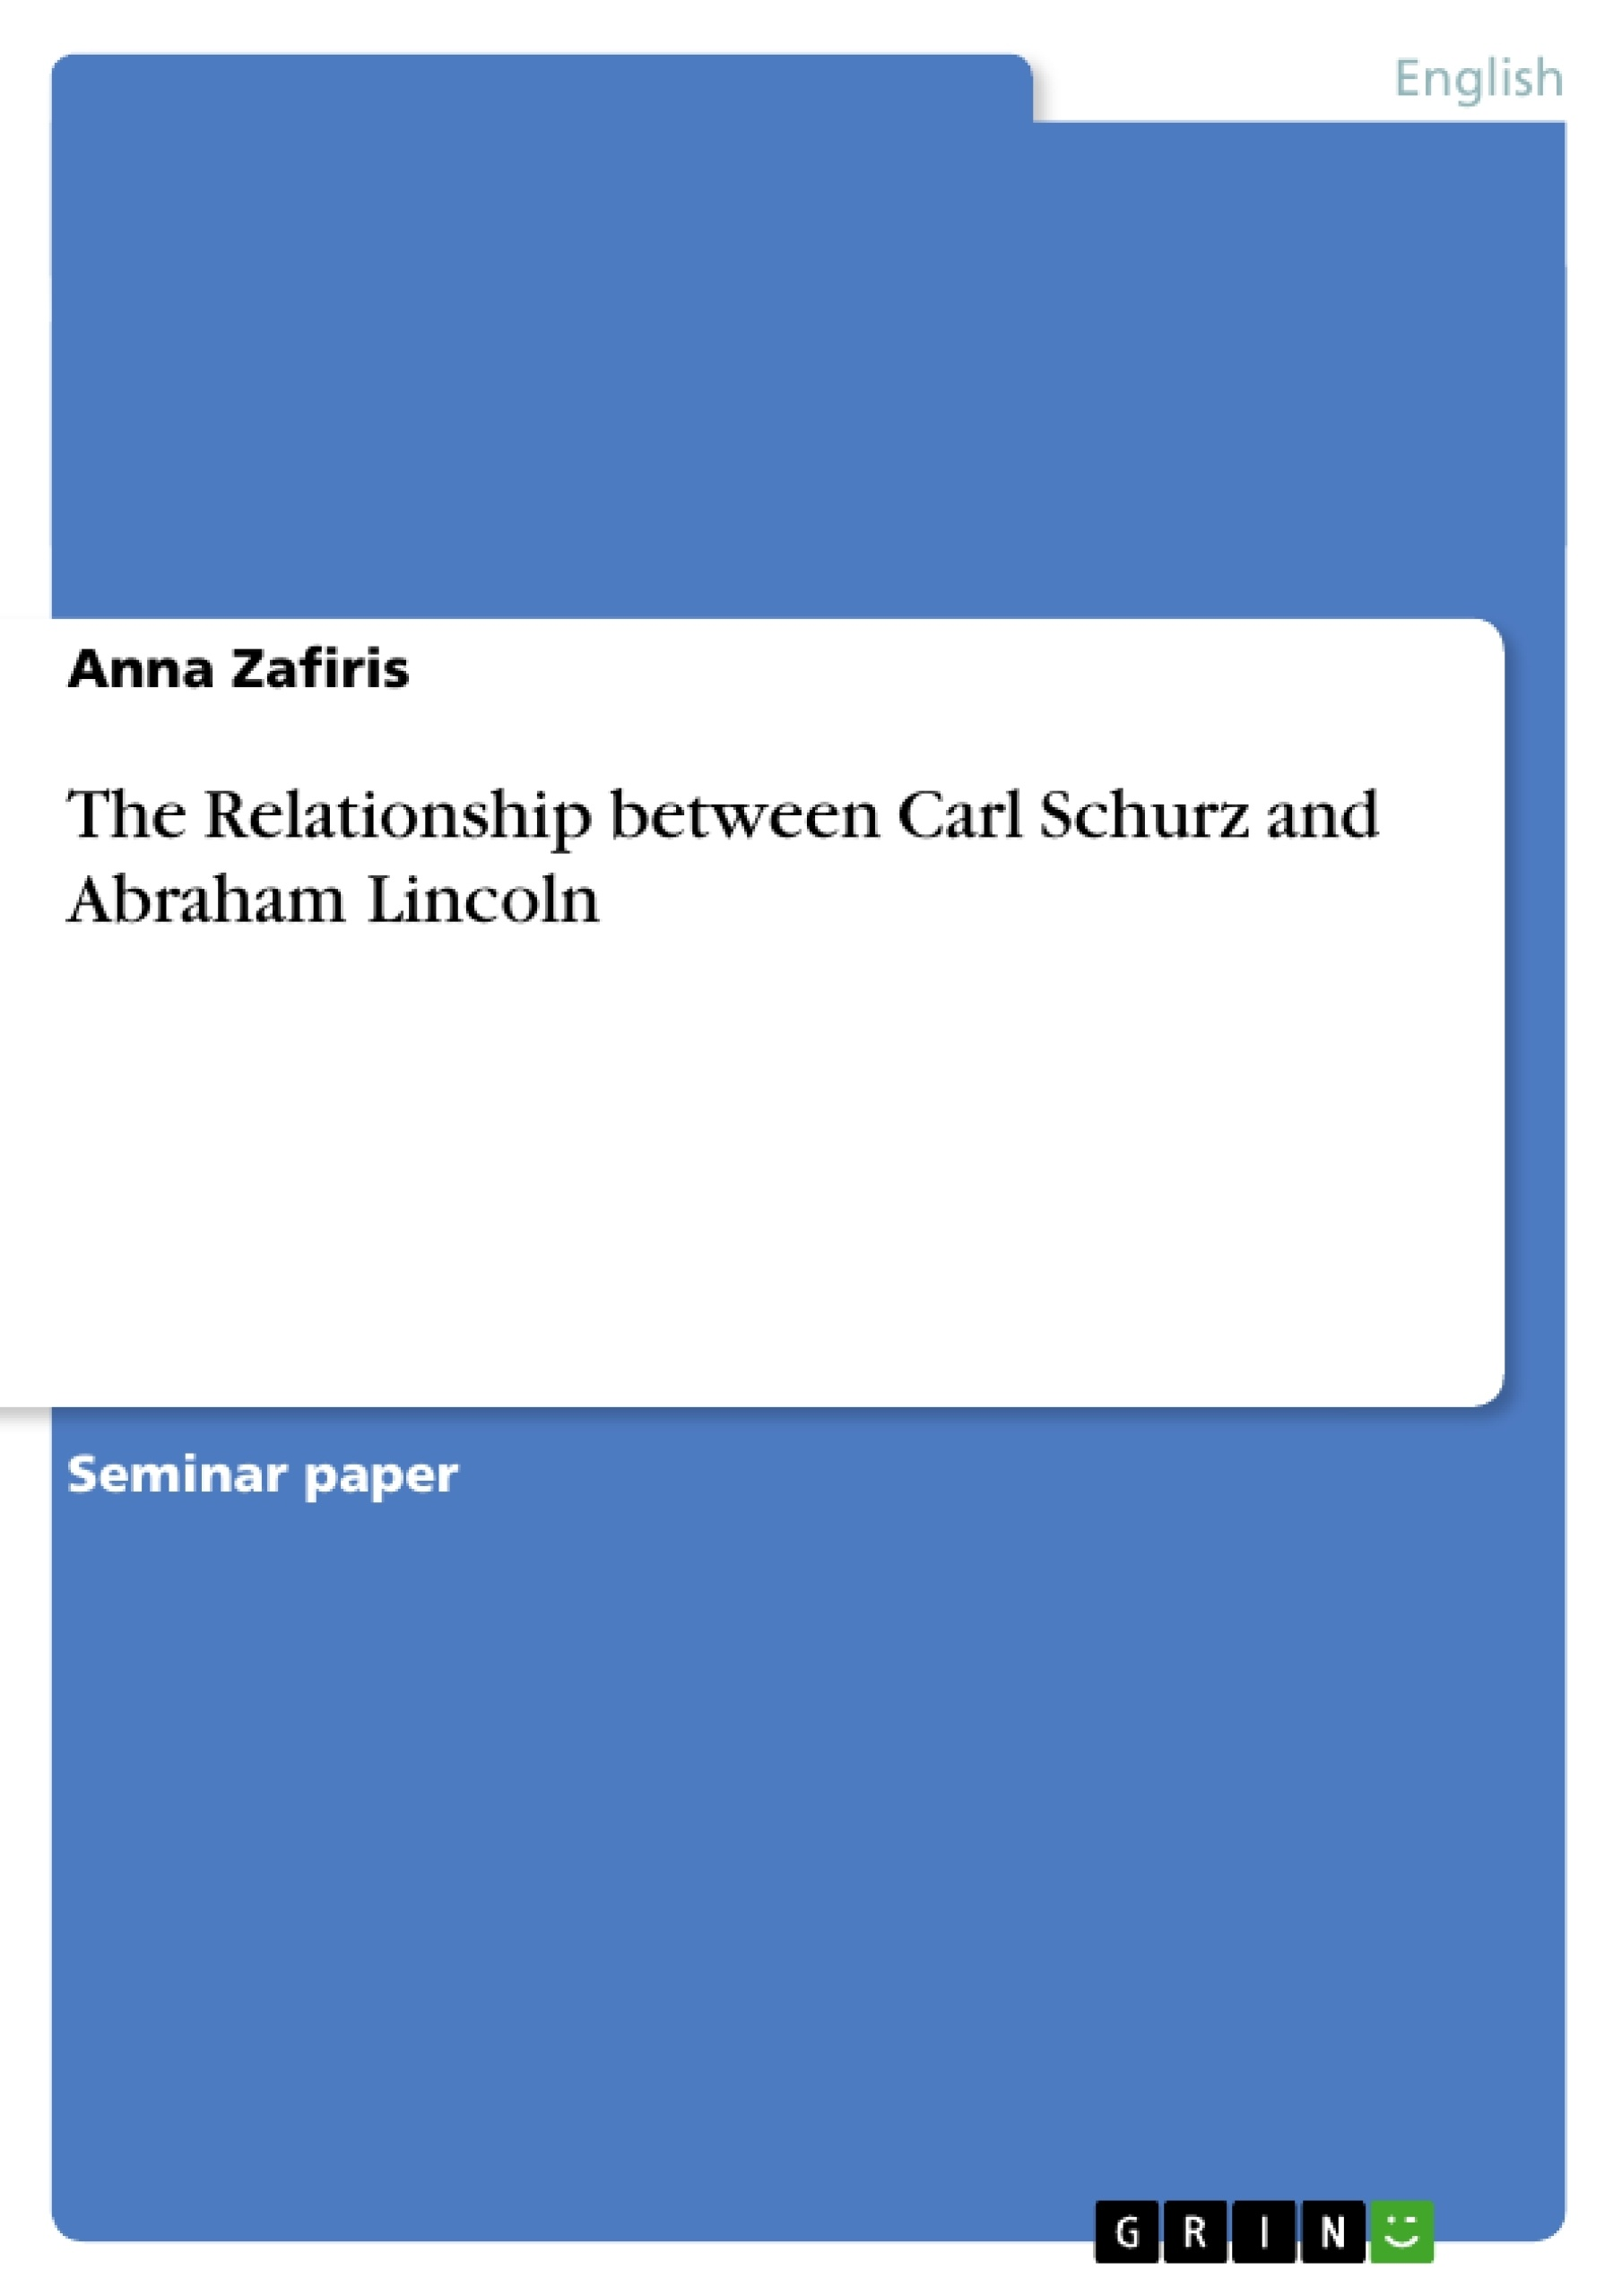 Title: The Relationship between Carl Schurz and Abraham Lincoln